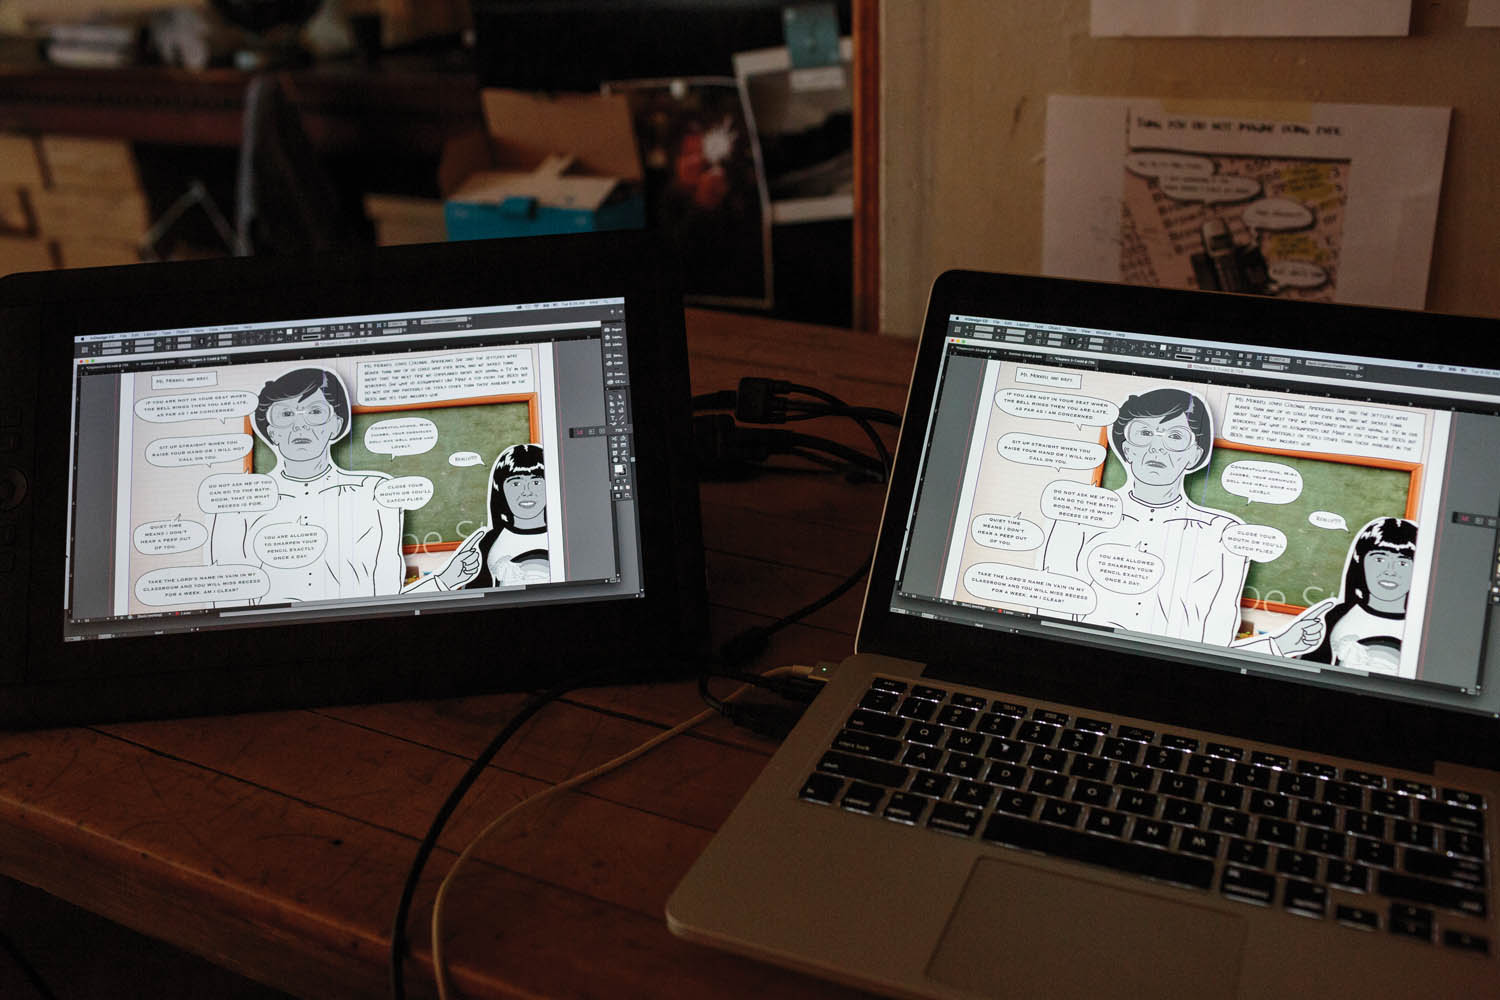 Illustrating a conversation with a Wacom tablet. Photo by Sarah Blesener.